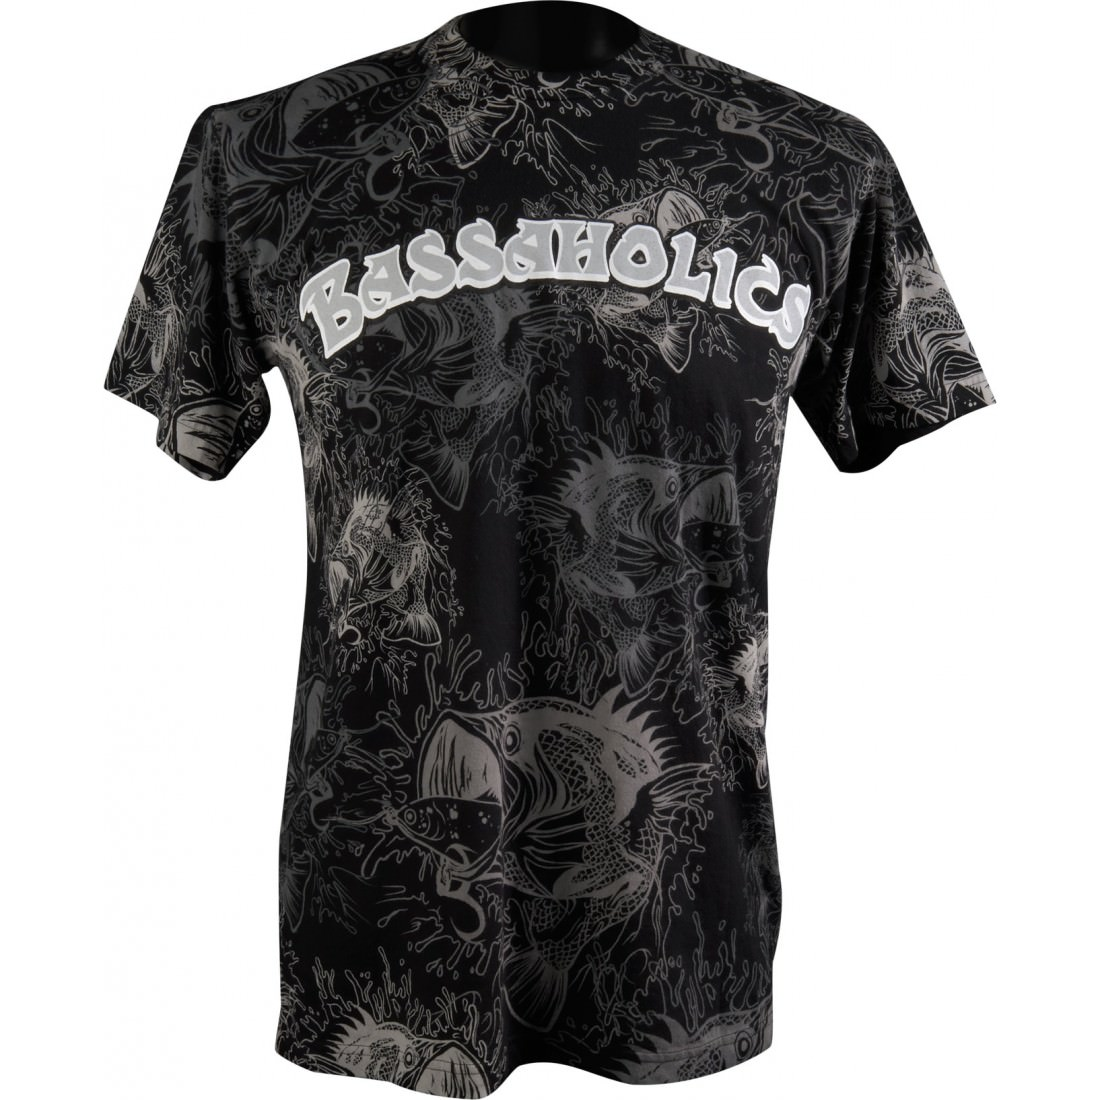 Over the Top Mens T-Shirt in Black